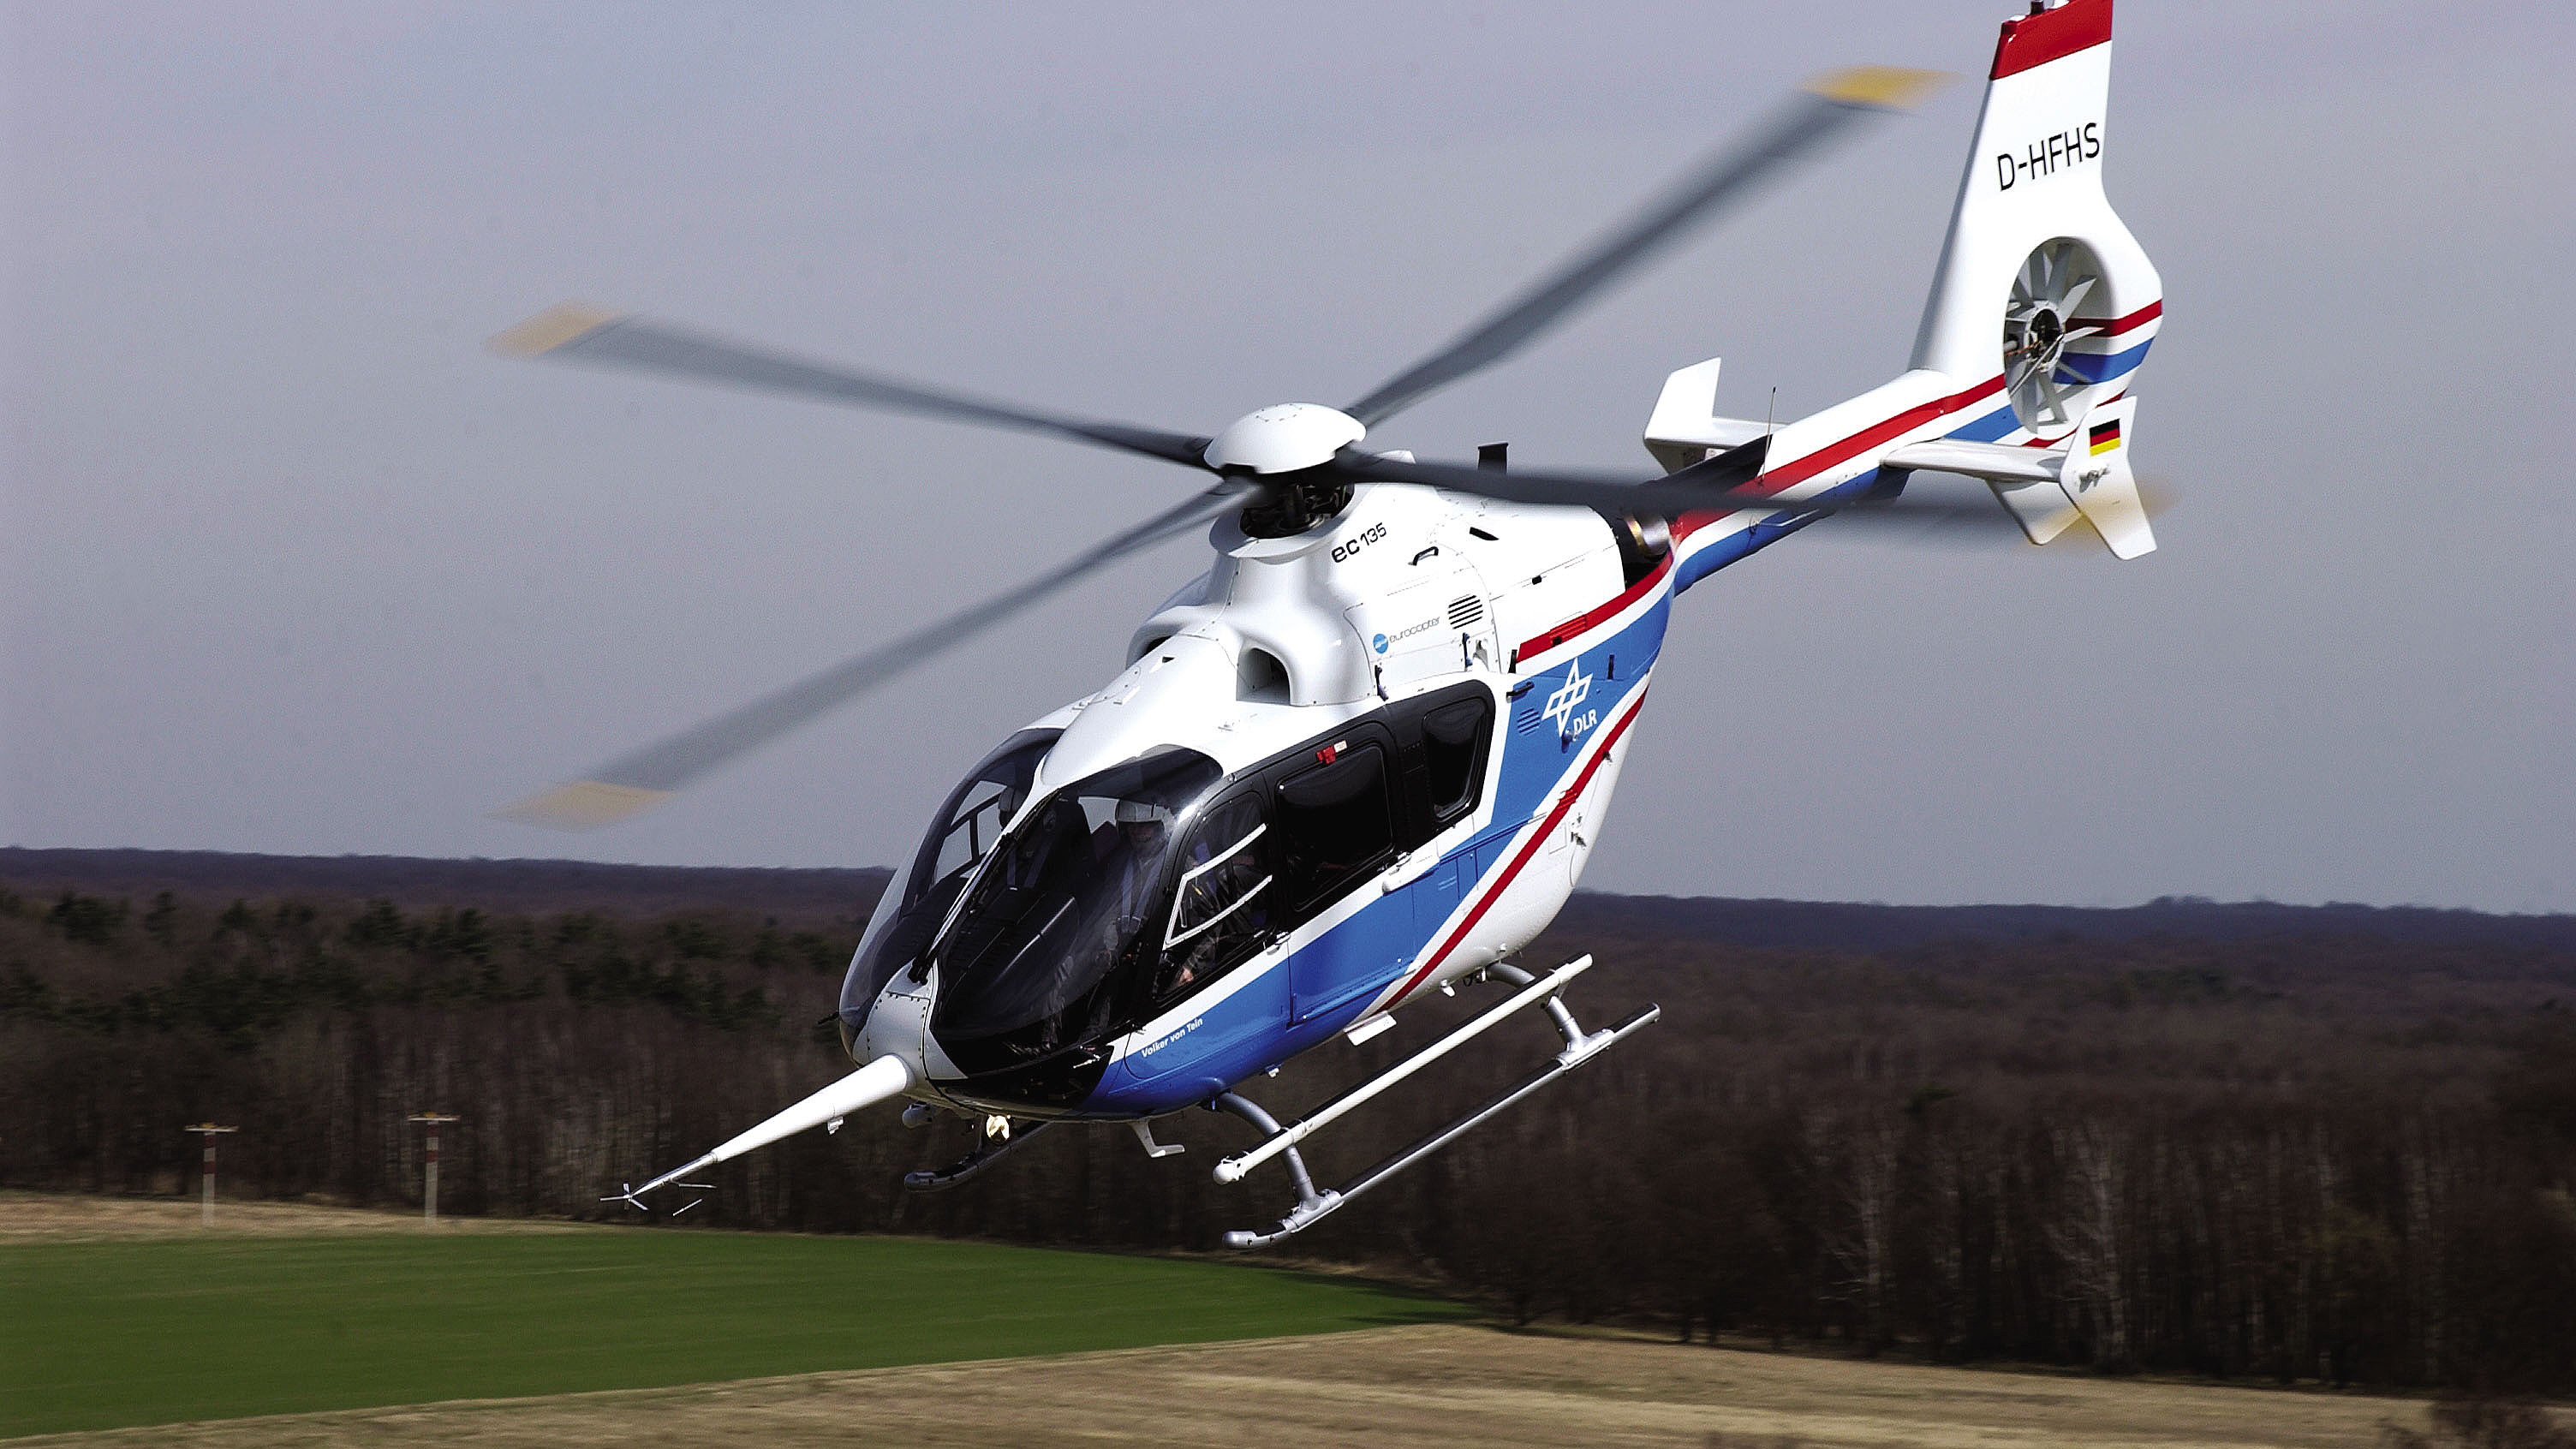 10 2 Wire >> ACT/FHS Flying Helicopter Simulator